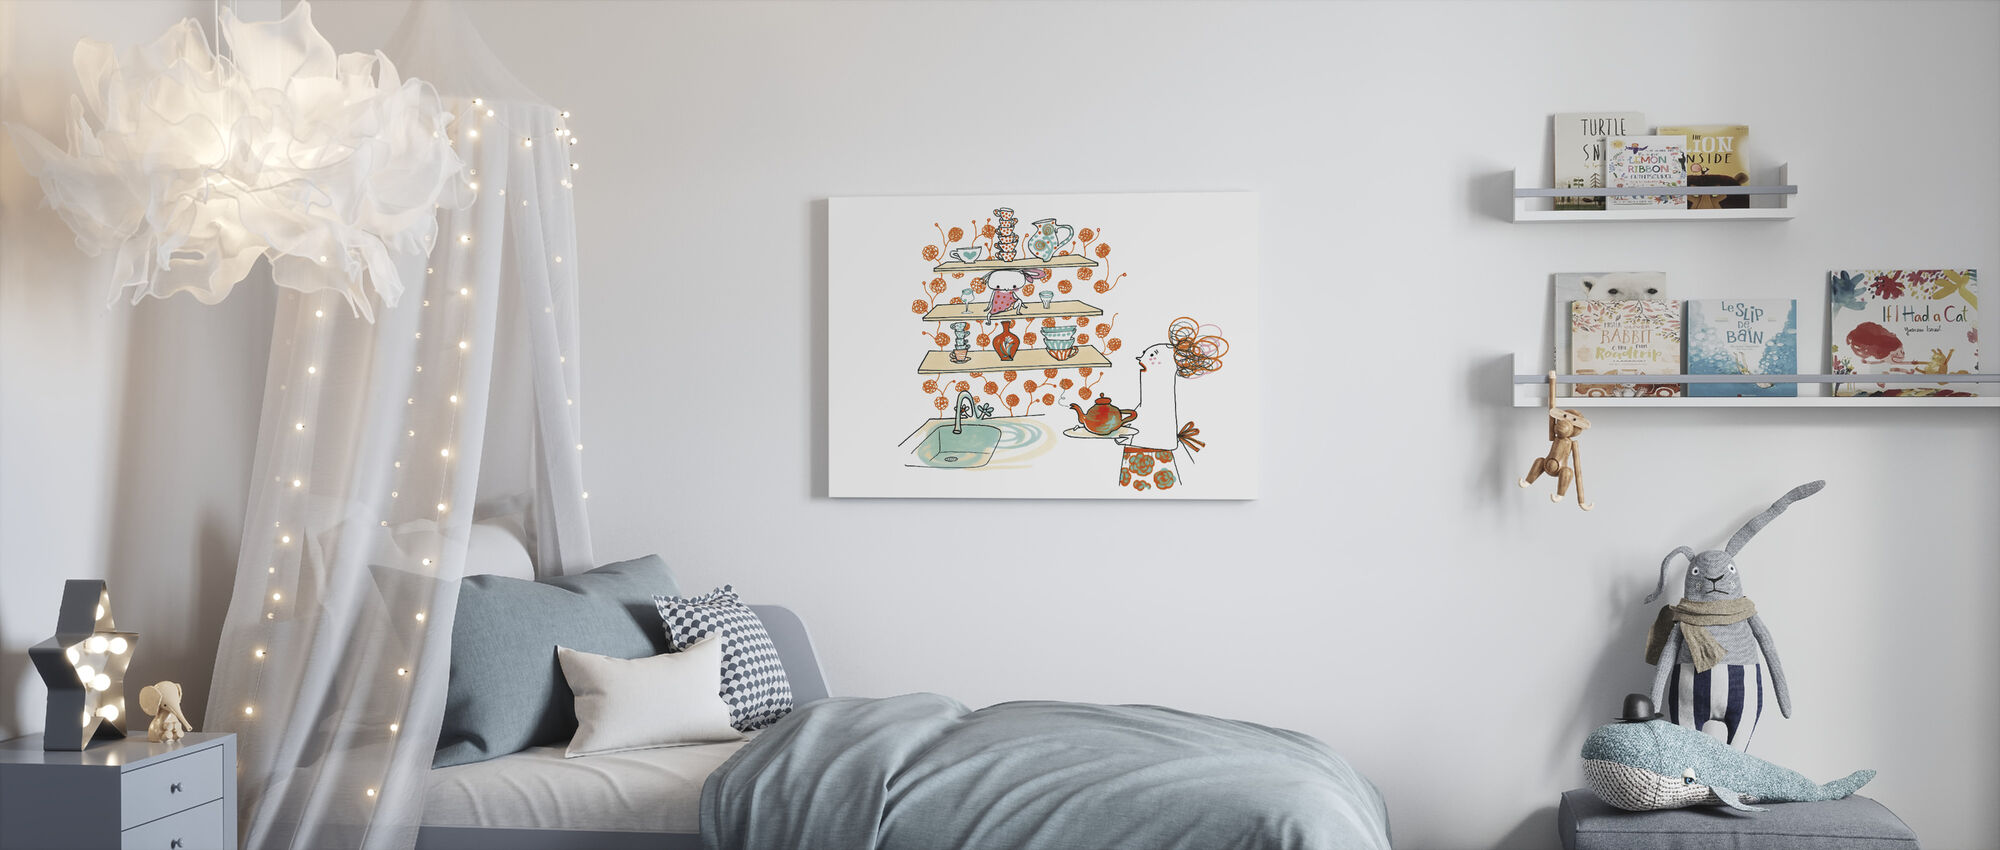 Above a Vase Between Two Glass - Canvas print - Kids Room